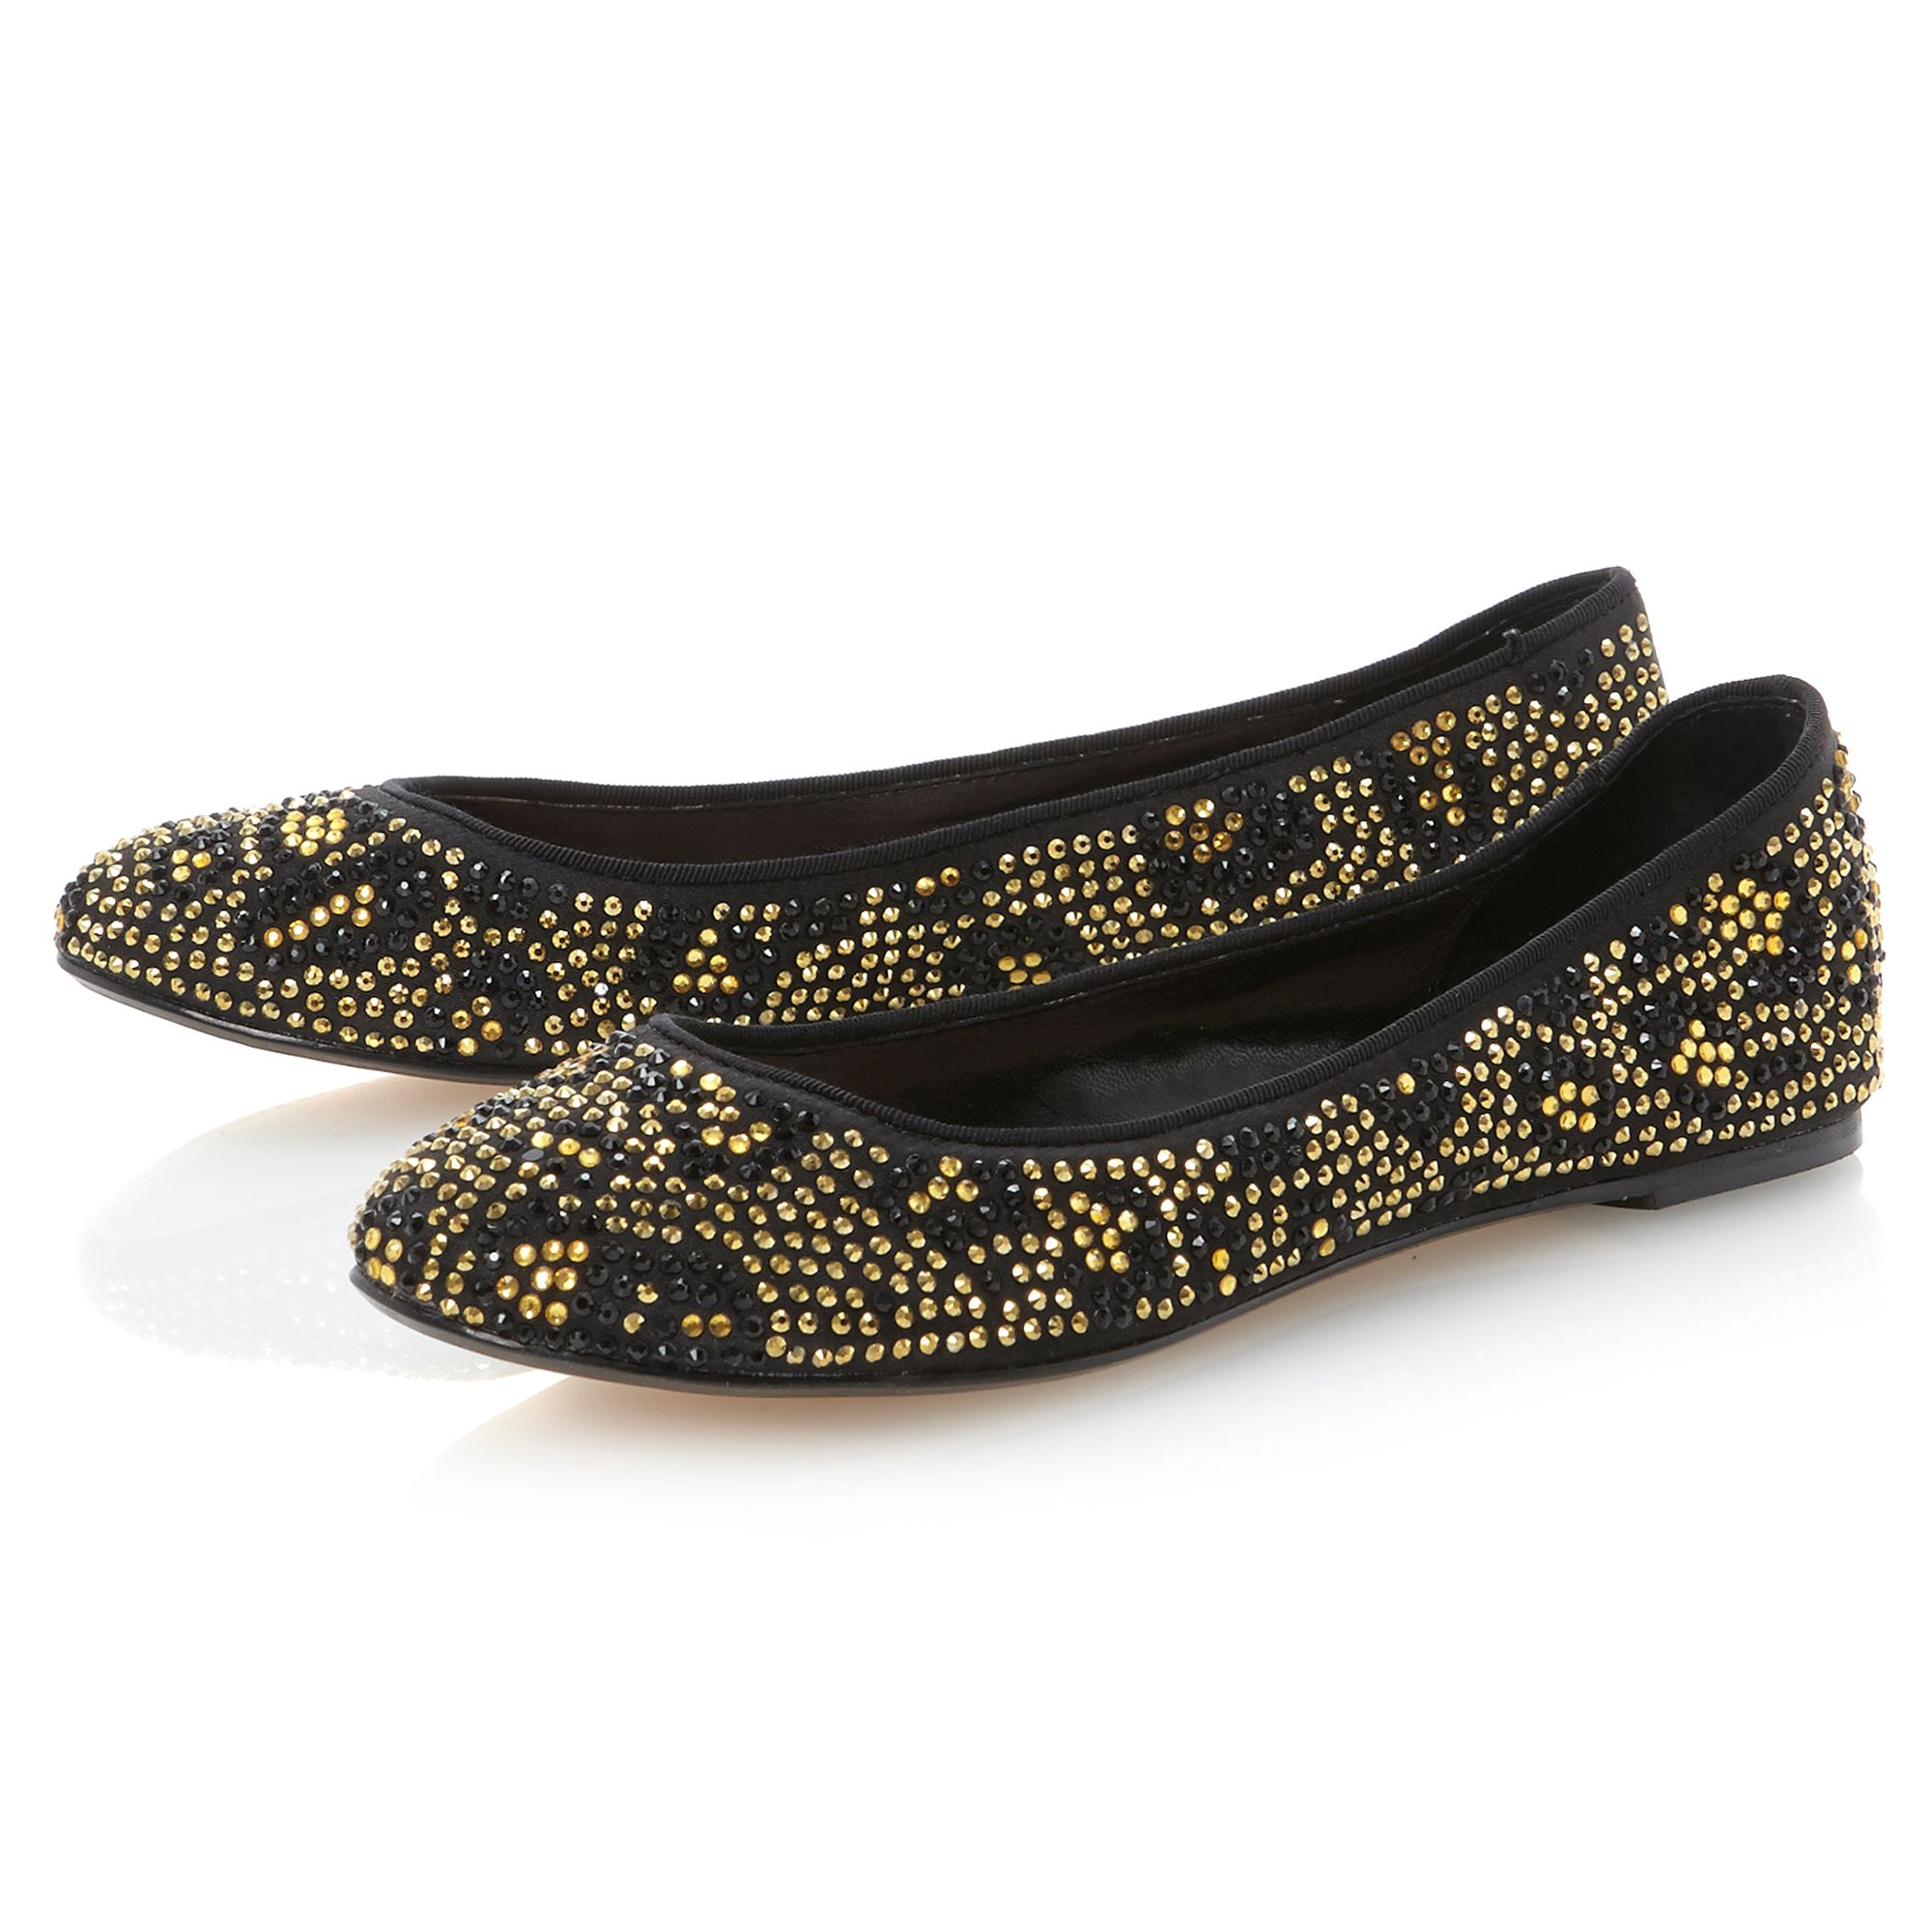 Meerie leopard diamante ballerina shoes